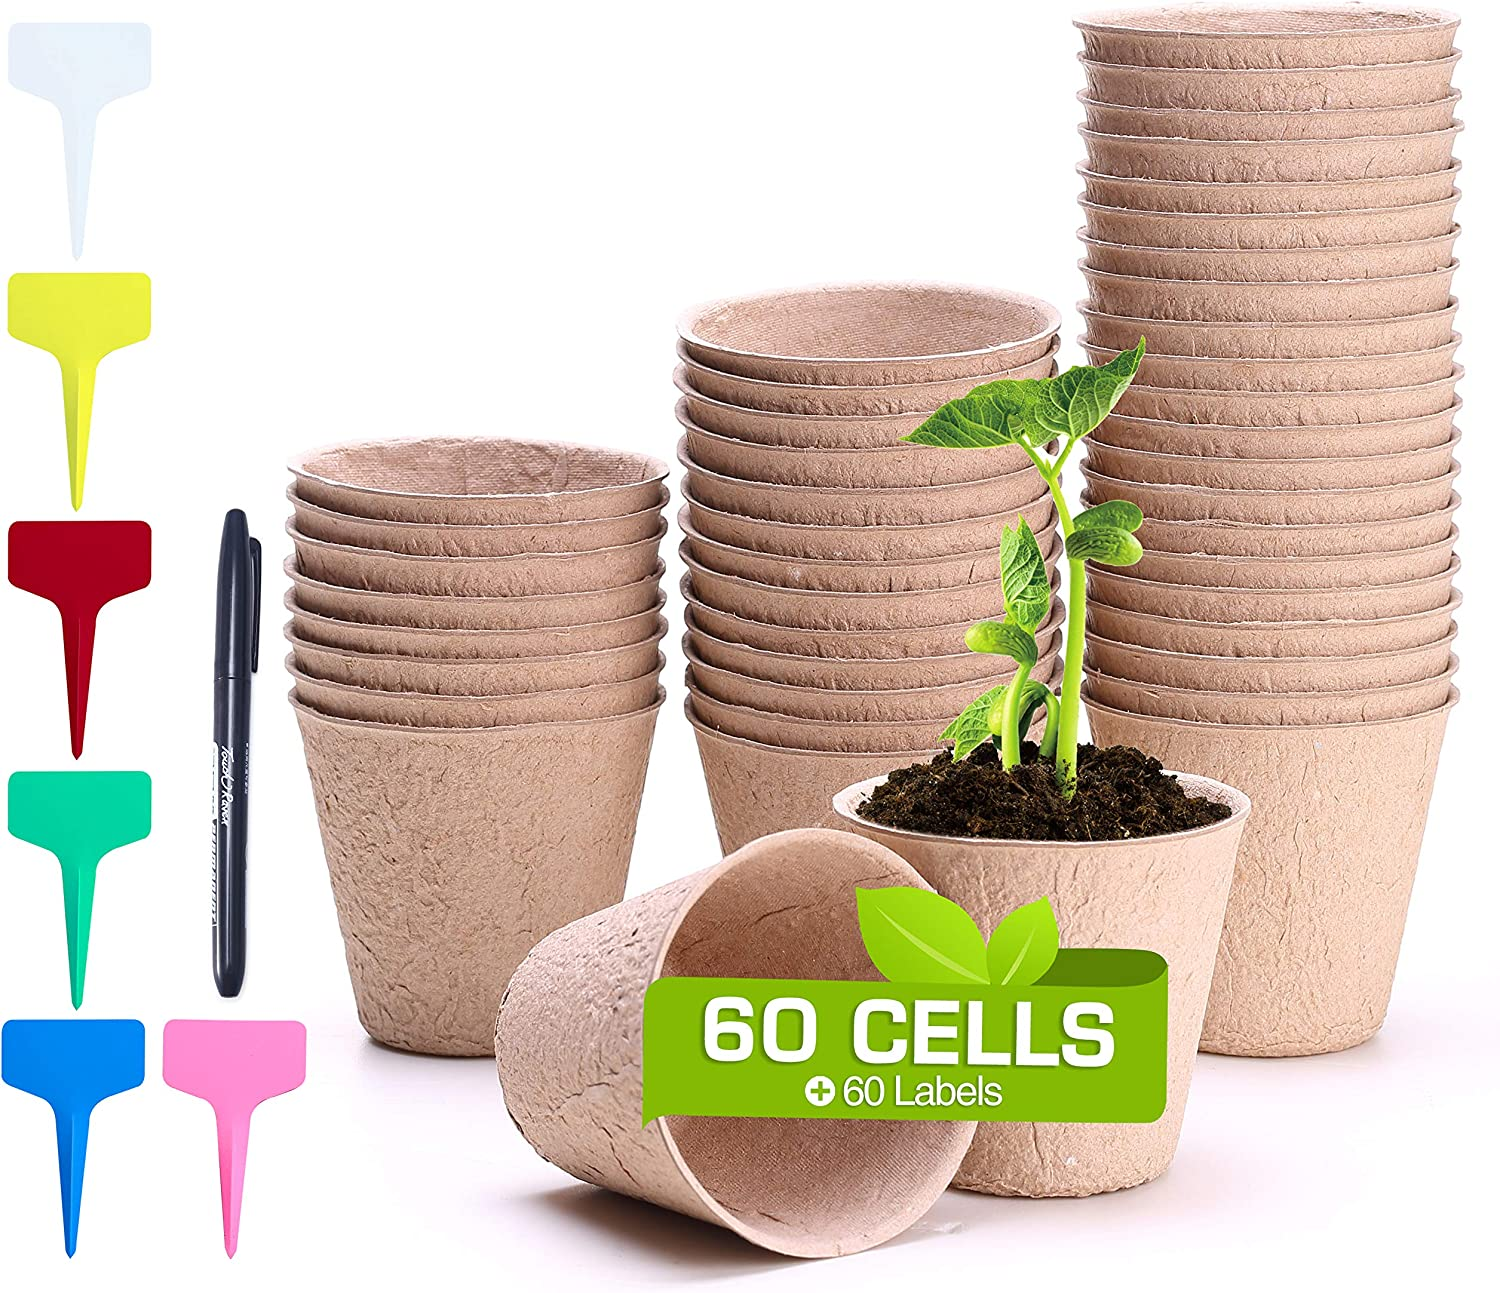 Seed Starter Pots, FANGZHIDI 60 Pack 3 Inches Garden Seedling Plant Peat Cup, 100% Eco-Friendly Organic Biodegradable Germination Pulp Nursery Planter, Indoor/Outdoor, 60 Labels and 1 Mark Pen